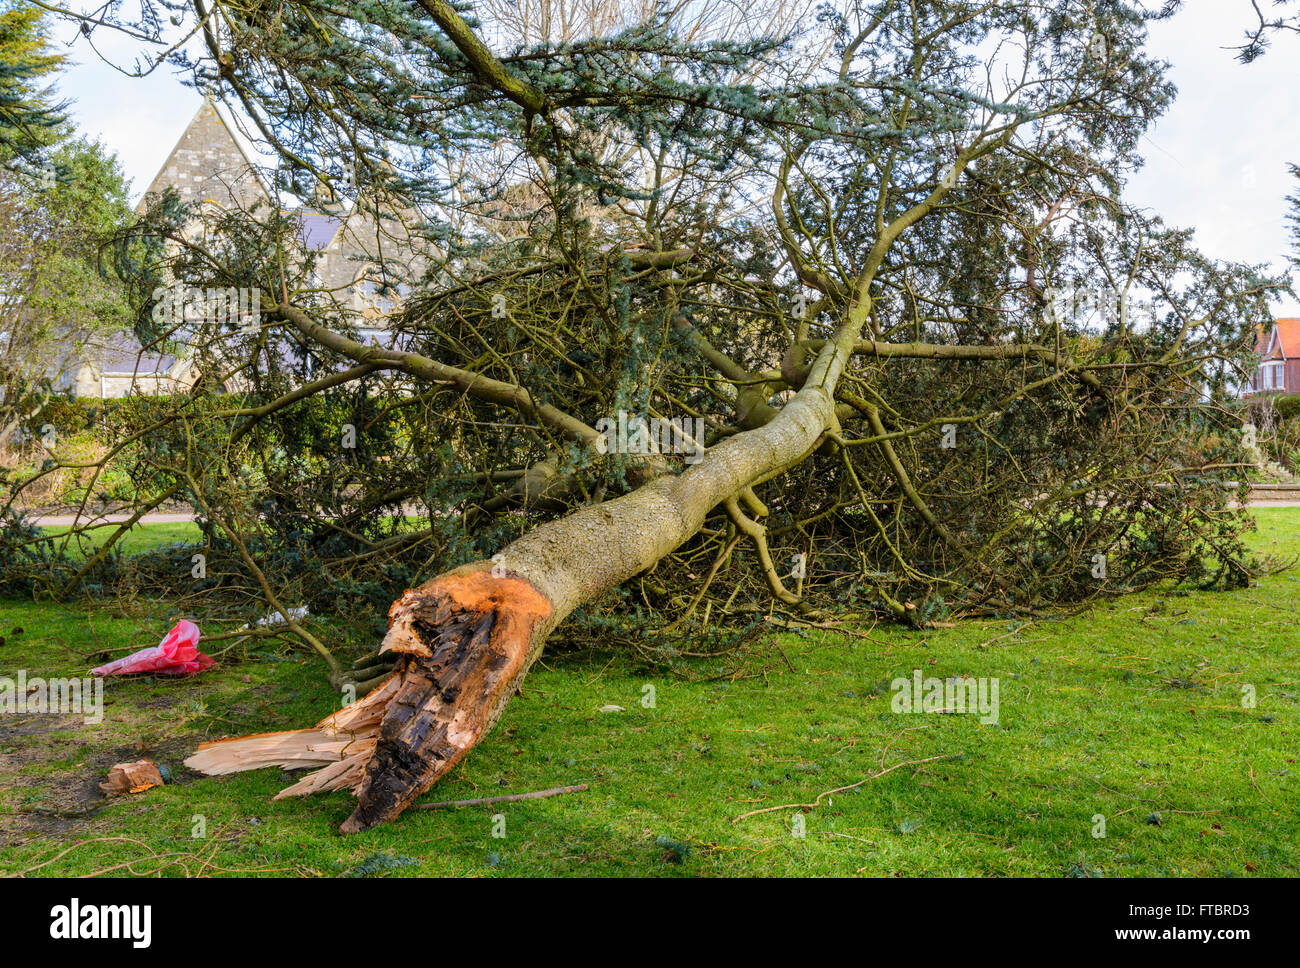 Damaged tree. Branch of a tree broken off from the main trunk during gales in Southern England, UK. - Stock Image